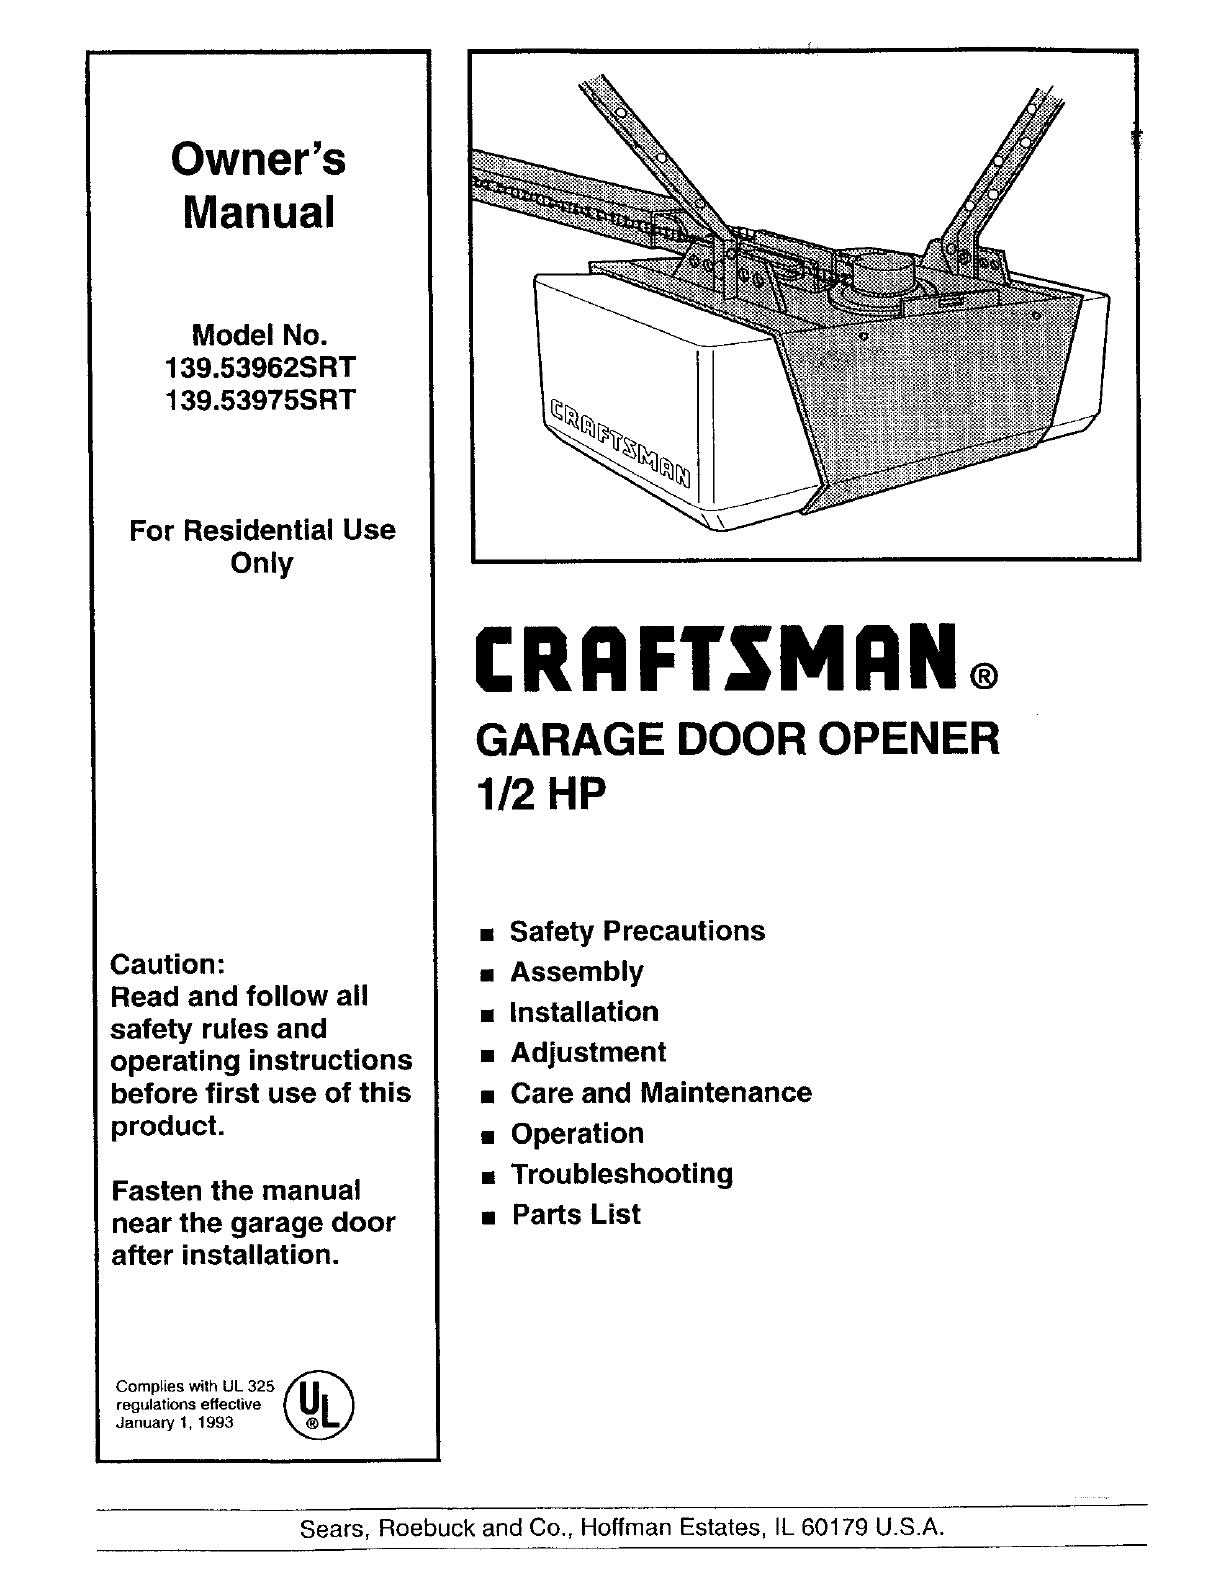 Craftsman Garage Door Opener 139 53975srt User Guide